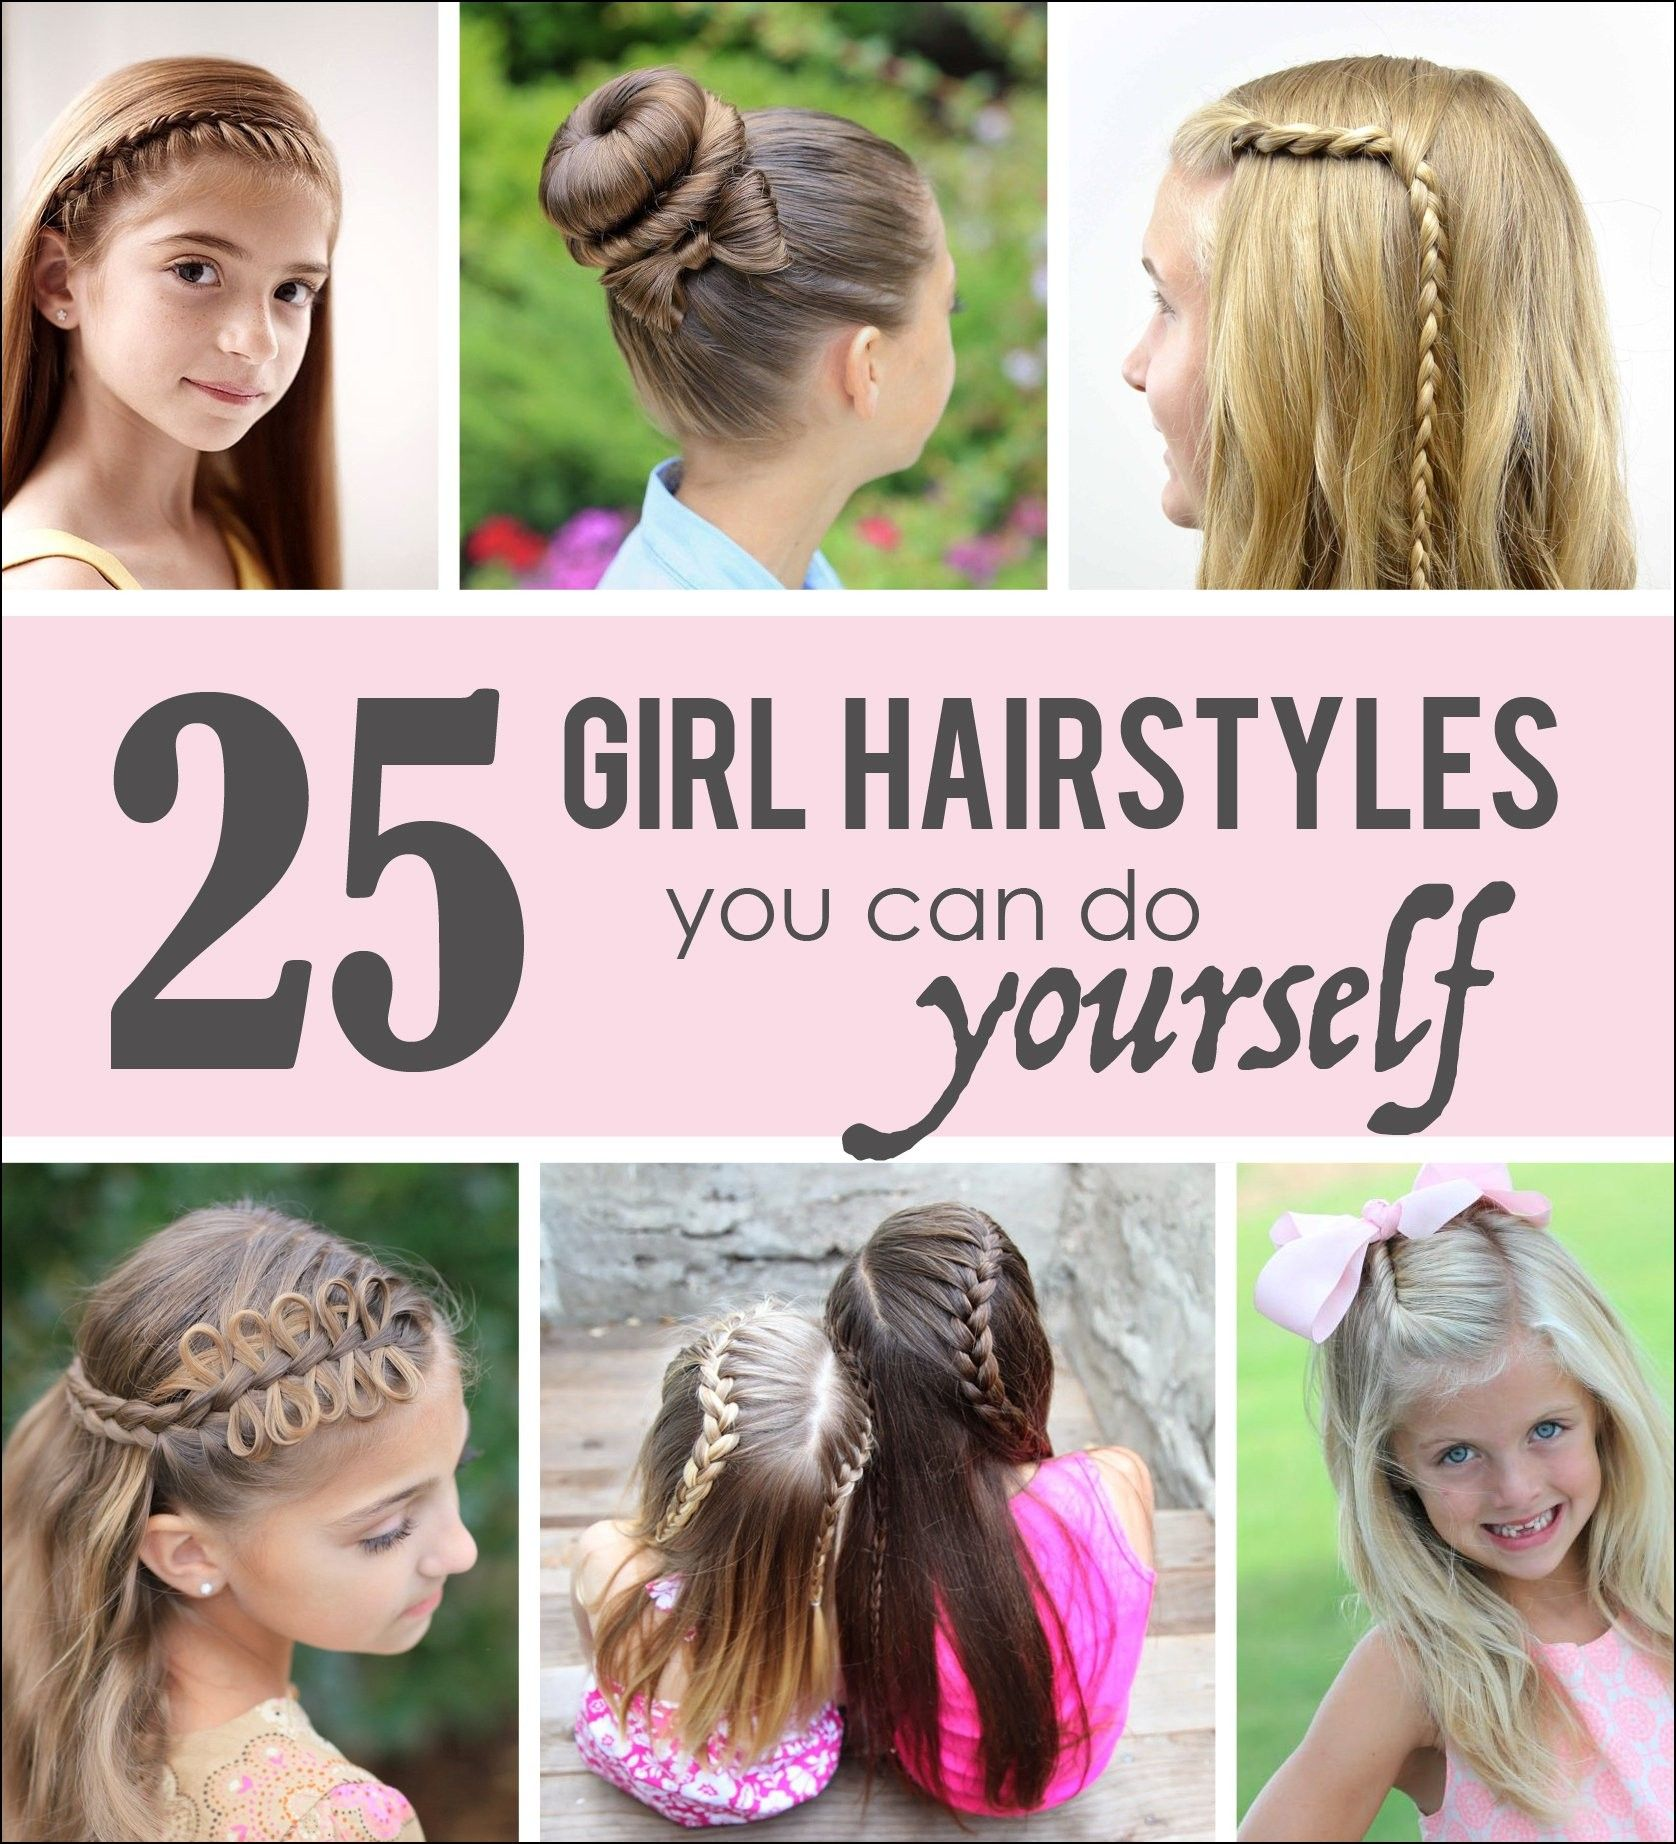 See Hairstyles On Yourself | Girls hair | Pinterest | Girl hair